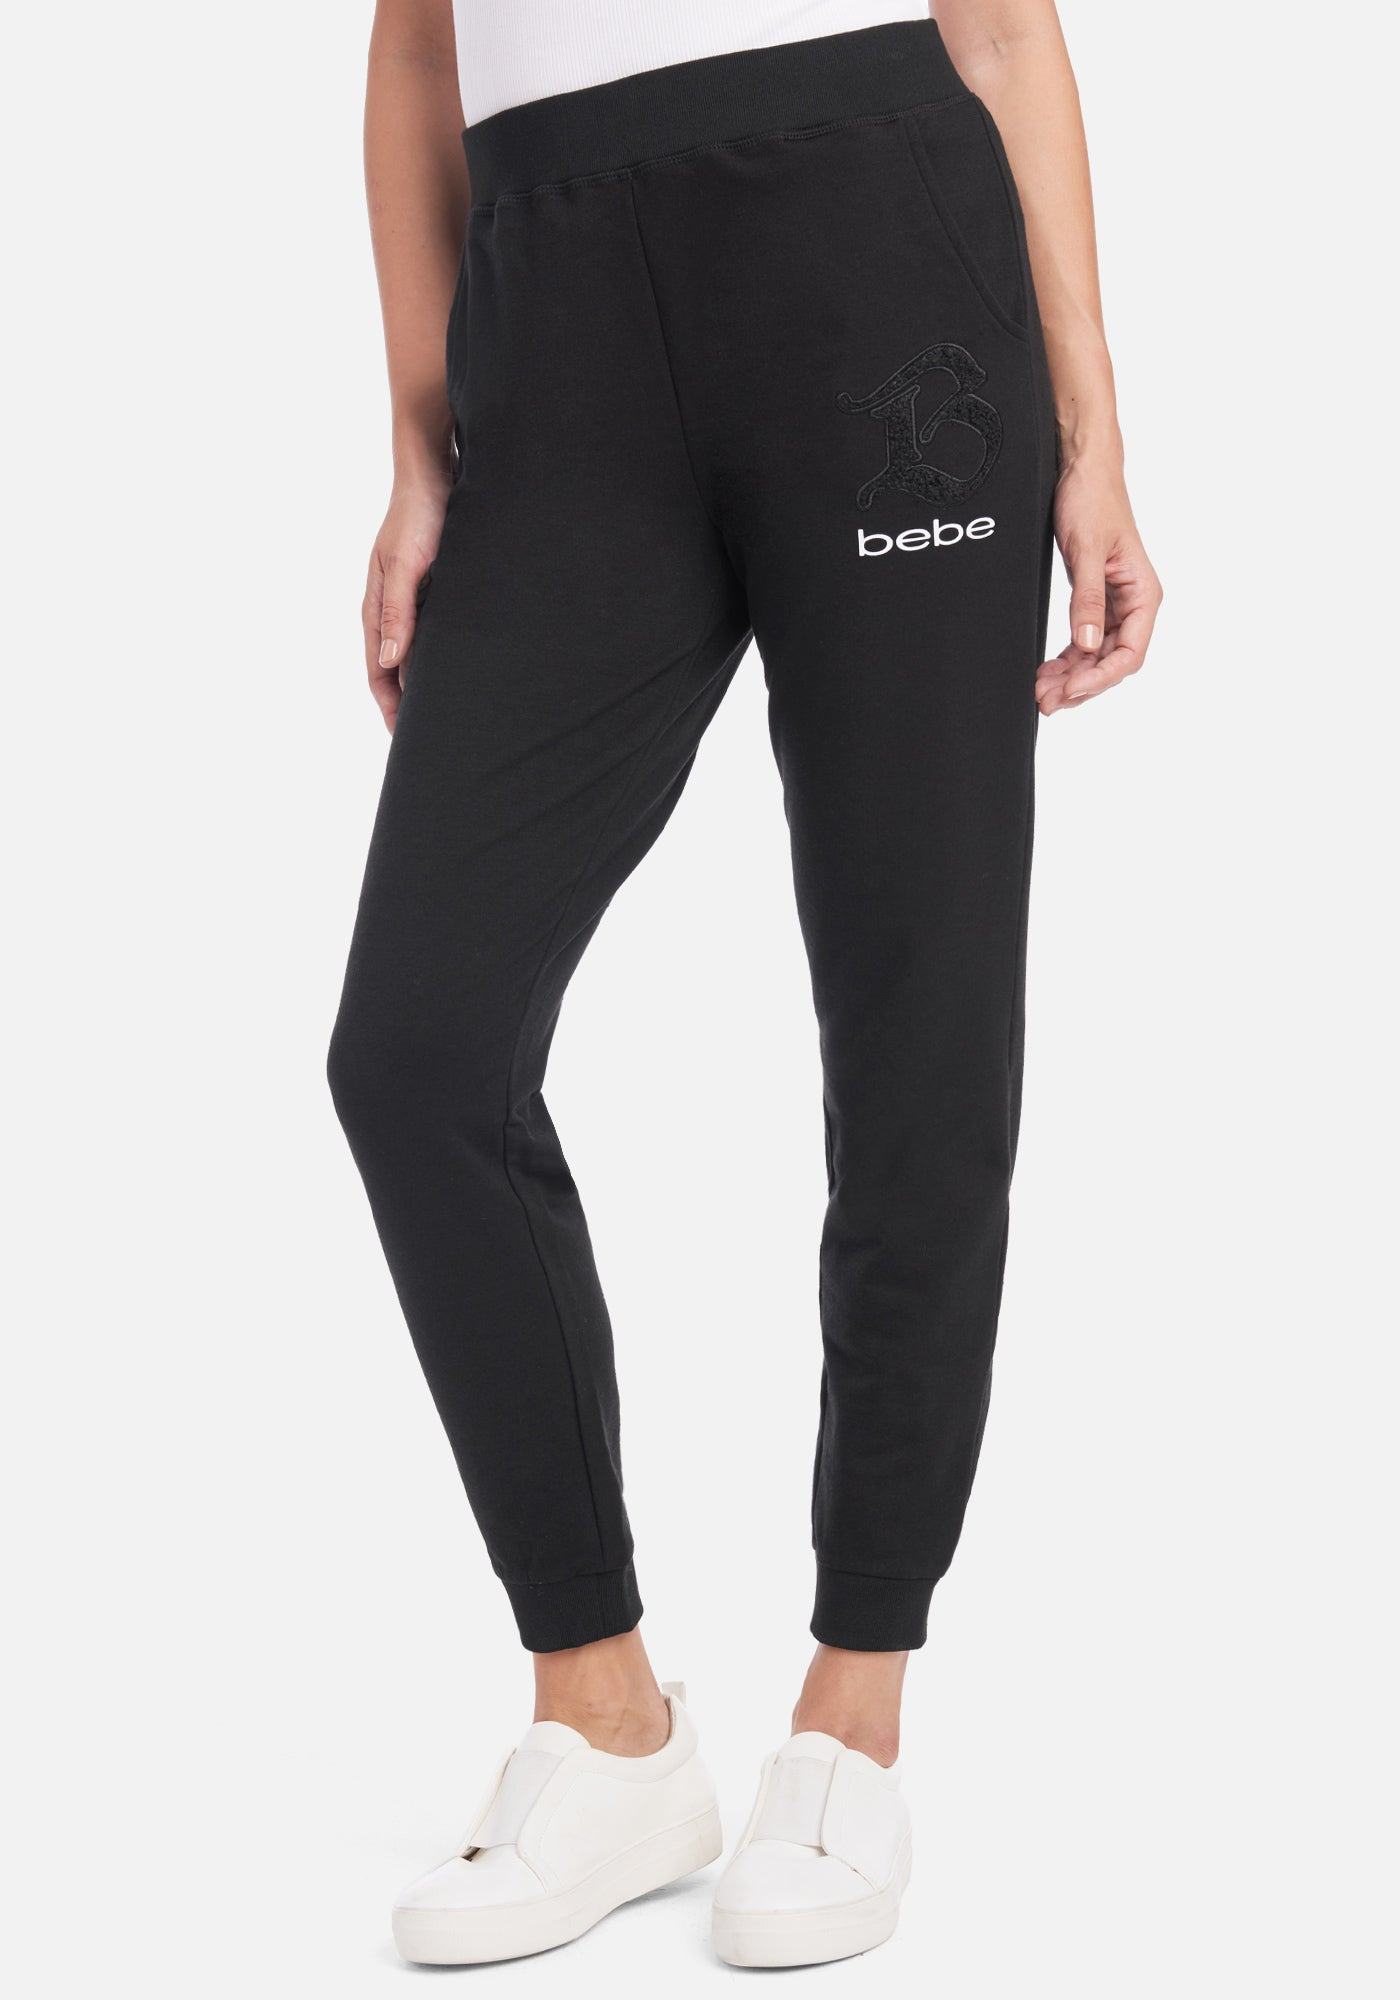 Women's Bebe Logo French Terry Pant, Size Small in Black Cotton/Spandex